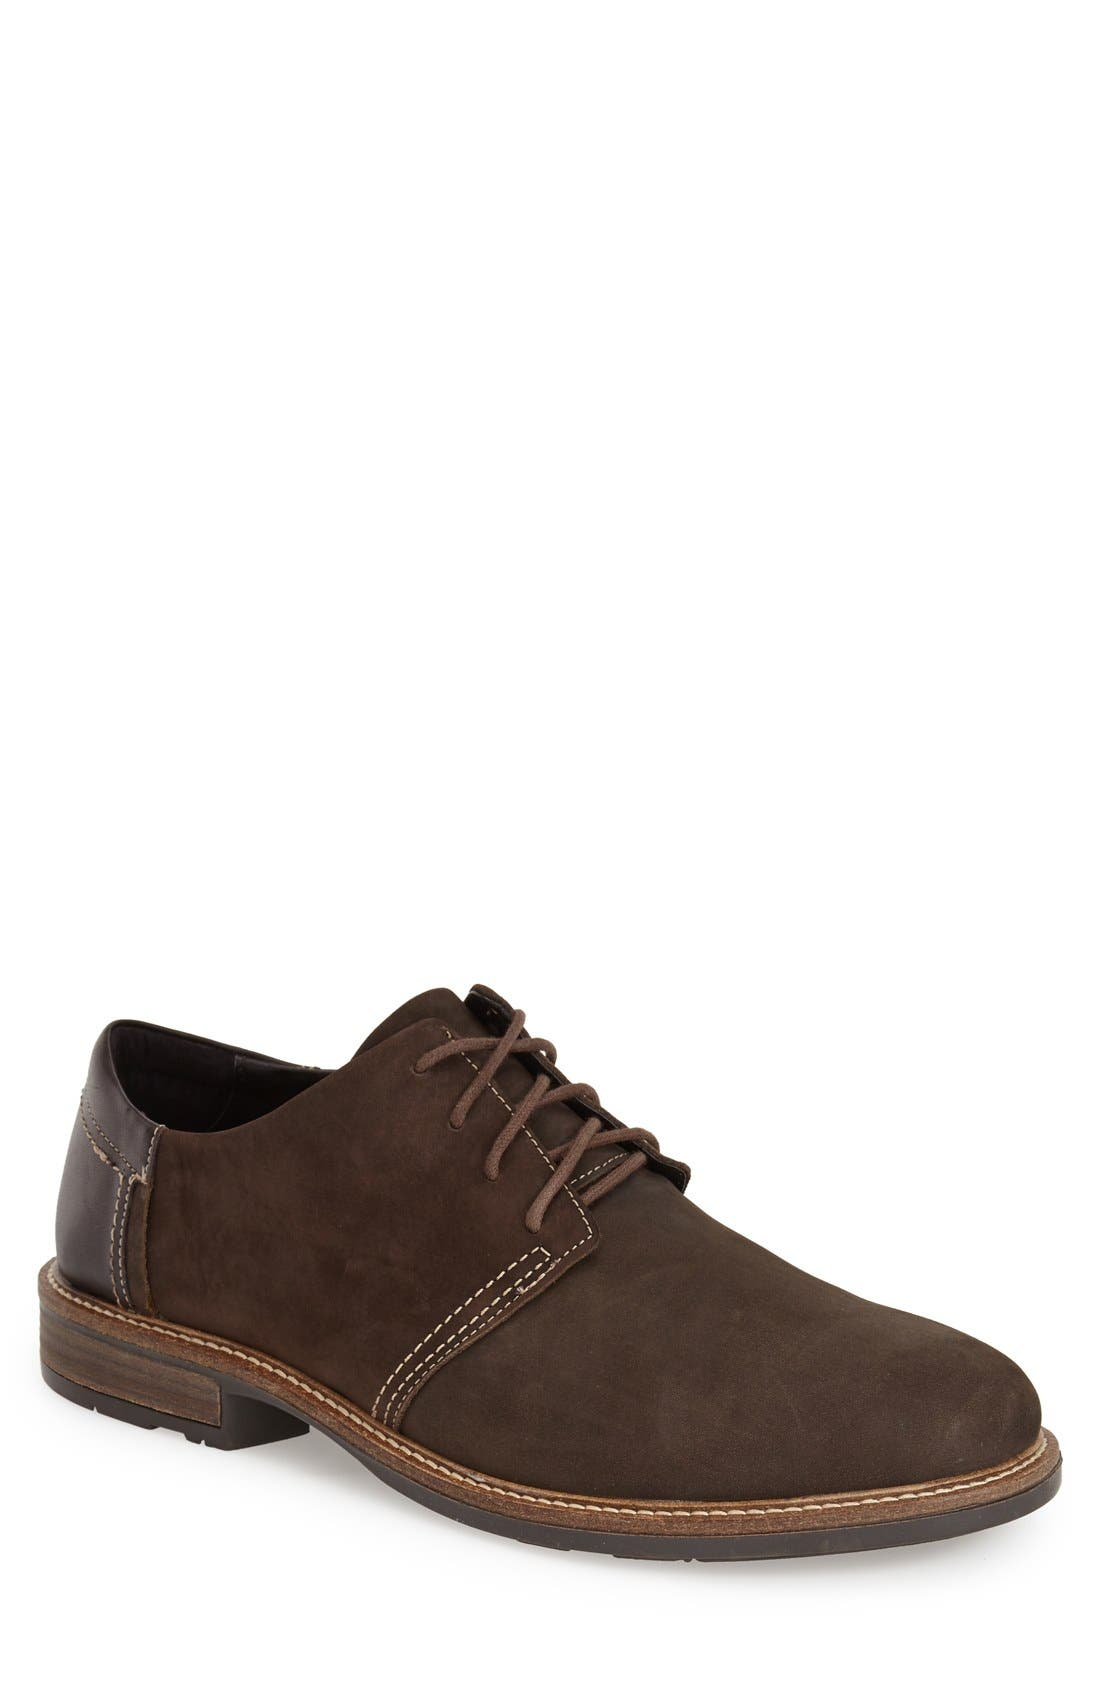 Plain Toe Derby,                             Main thumbnail 1, color,                             OILY BROWN/ FRENCH ROAST